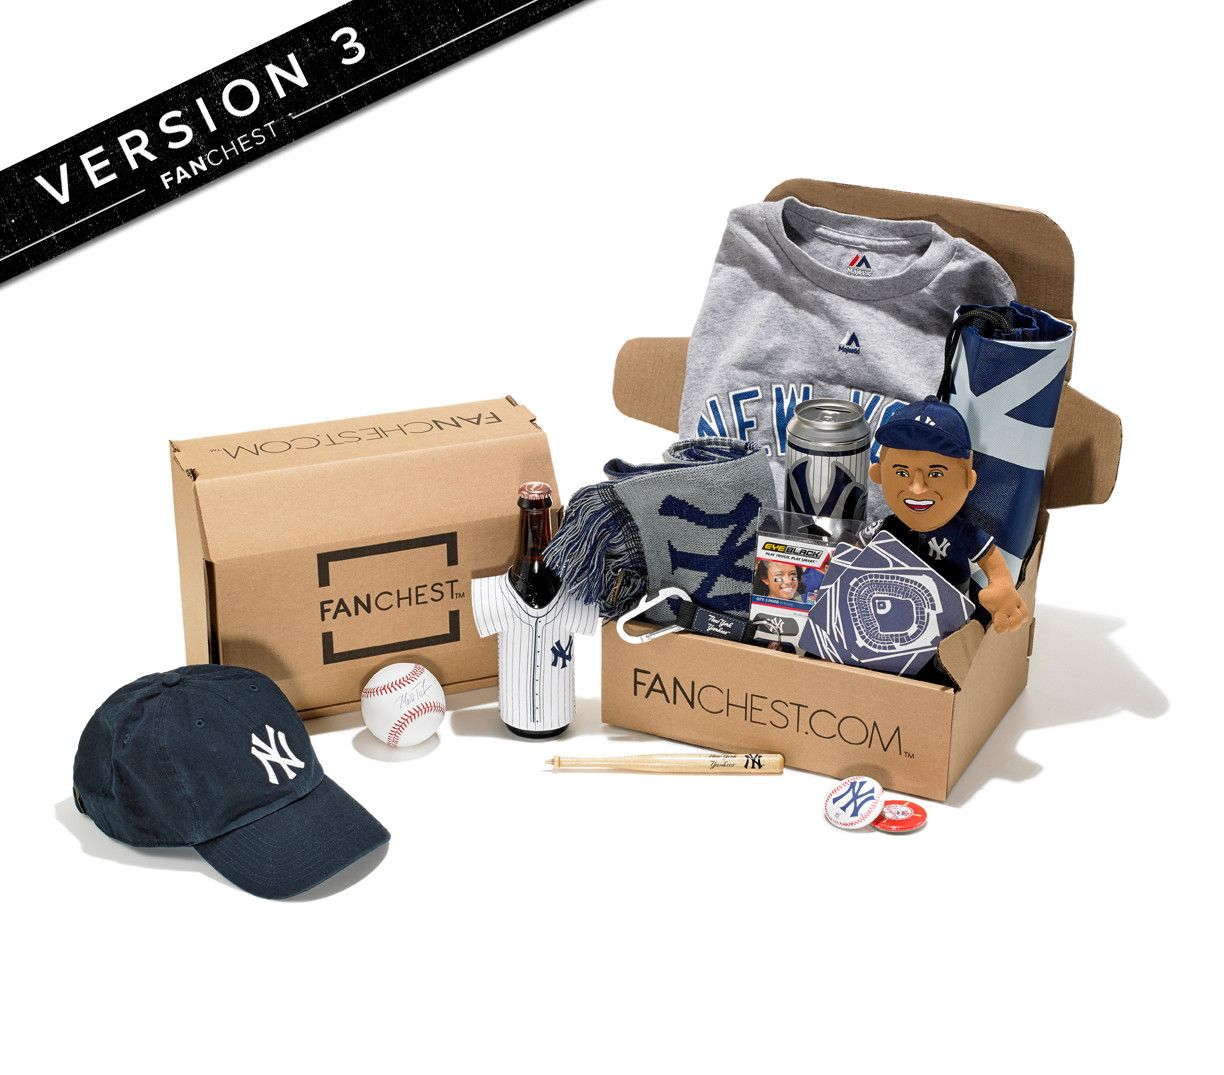 Ny Yankees Gift Box Yankees Gear Perfect Gift For Yankees Fans Fanchest New York Yankees Yankees Gifts Fanchest